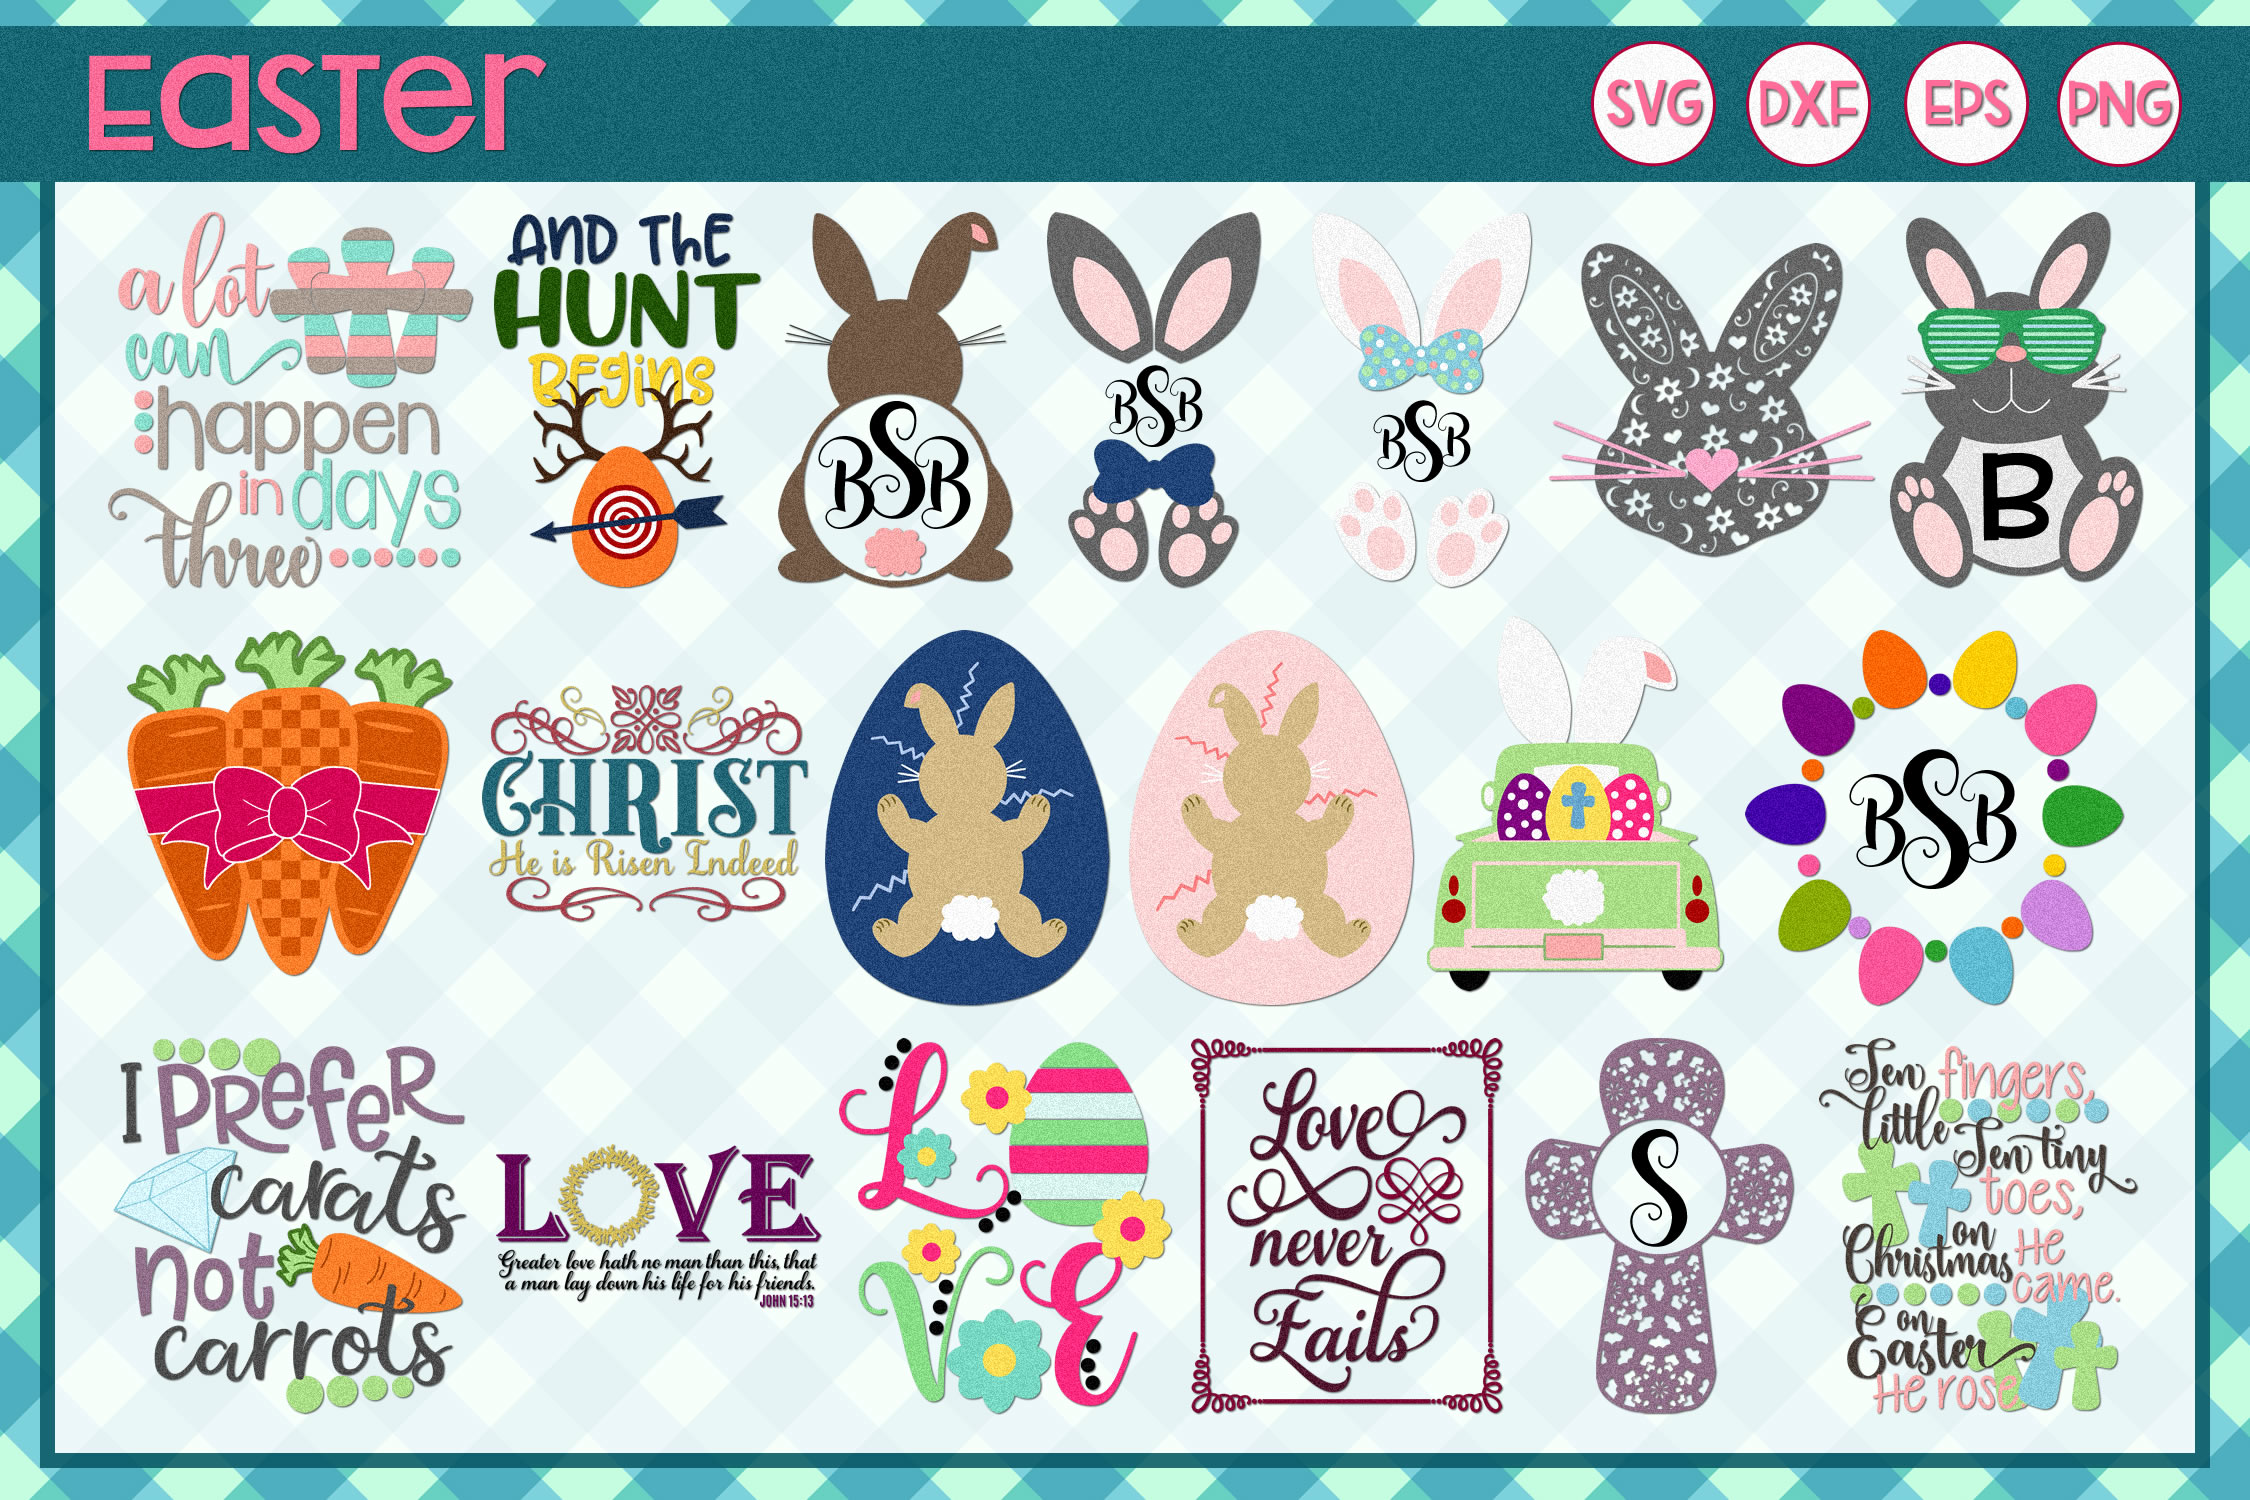 Spring Crafters Mega Bundle 250 Designs SVG DXF EPS PNG example image 3